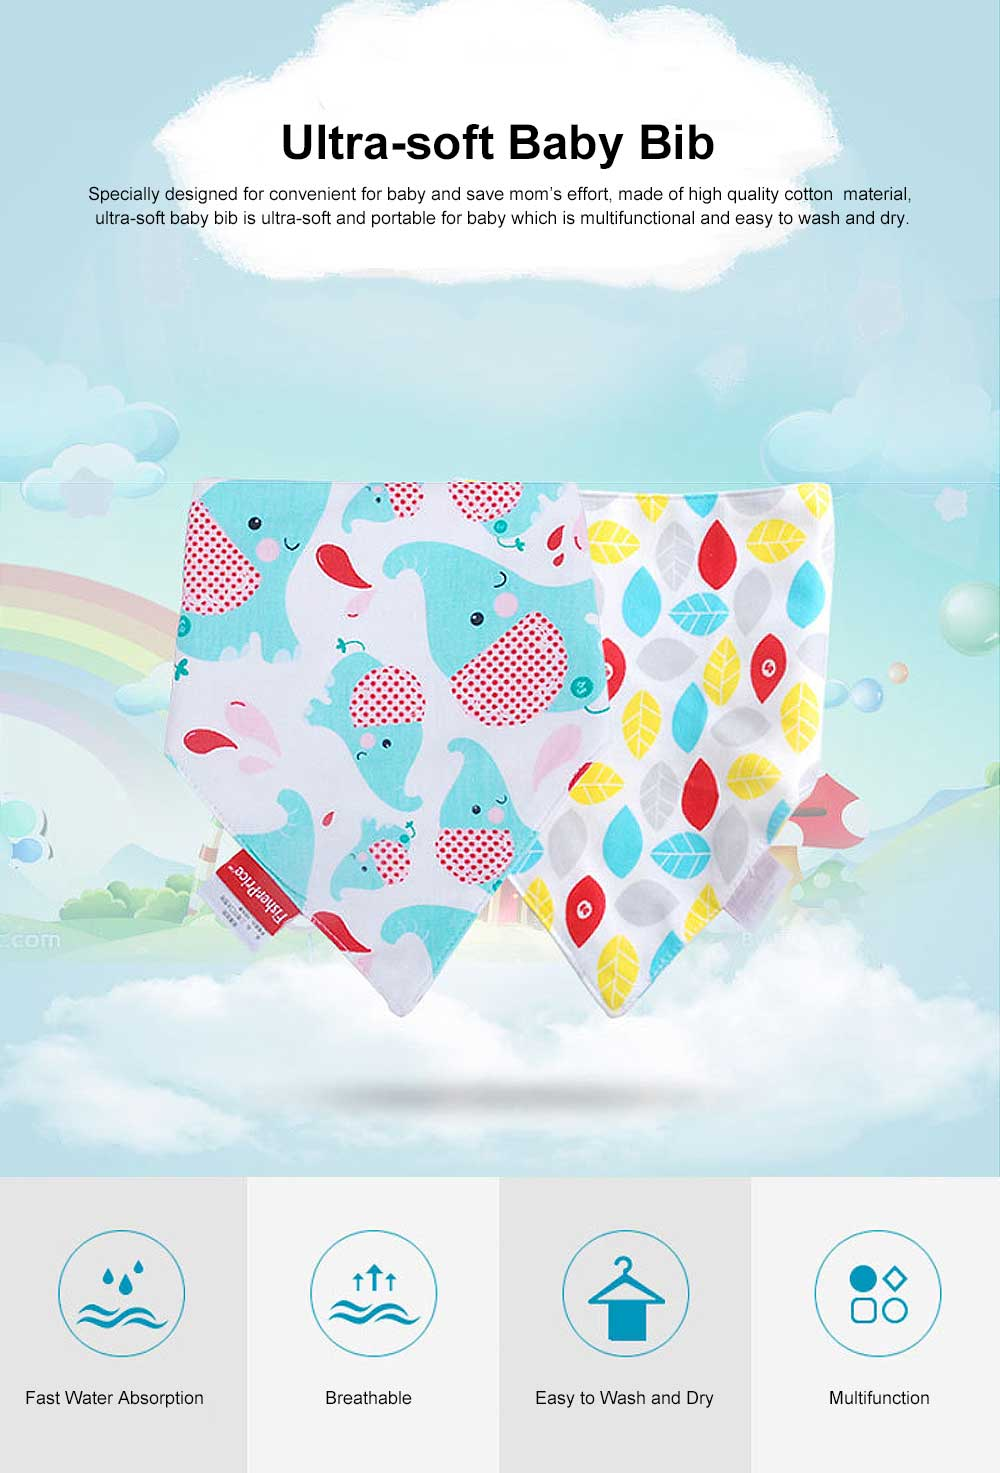 Ultra-soft Baby Bib & Cotton Super Soft Triangle Towel with Double Layer, Thickened, Double Buckle Design 0